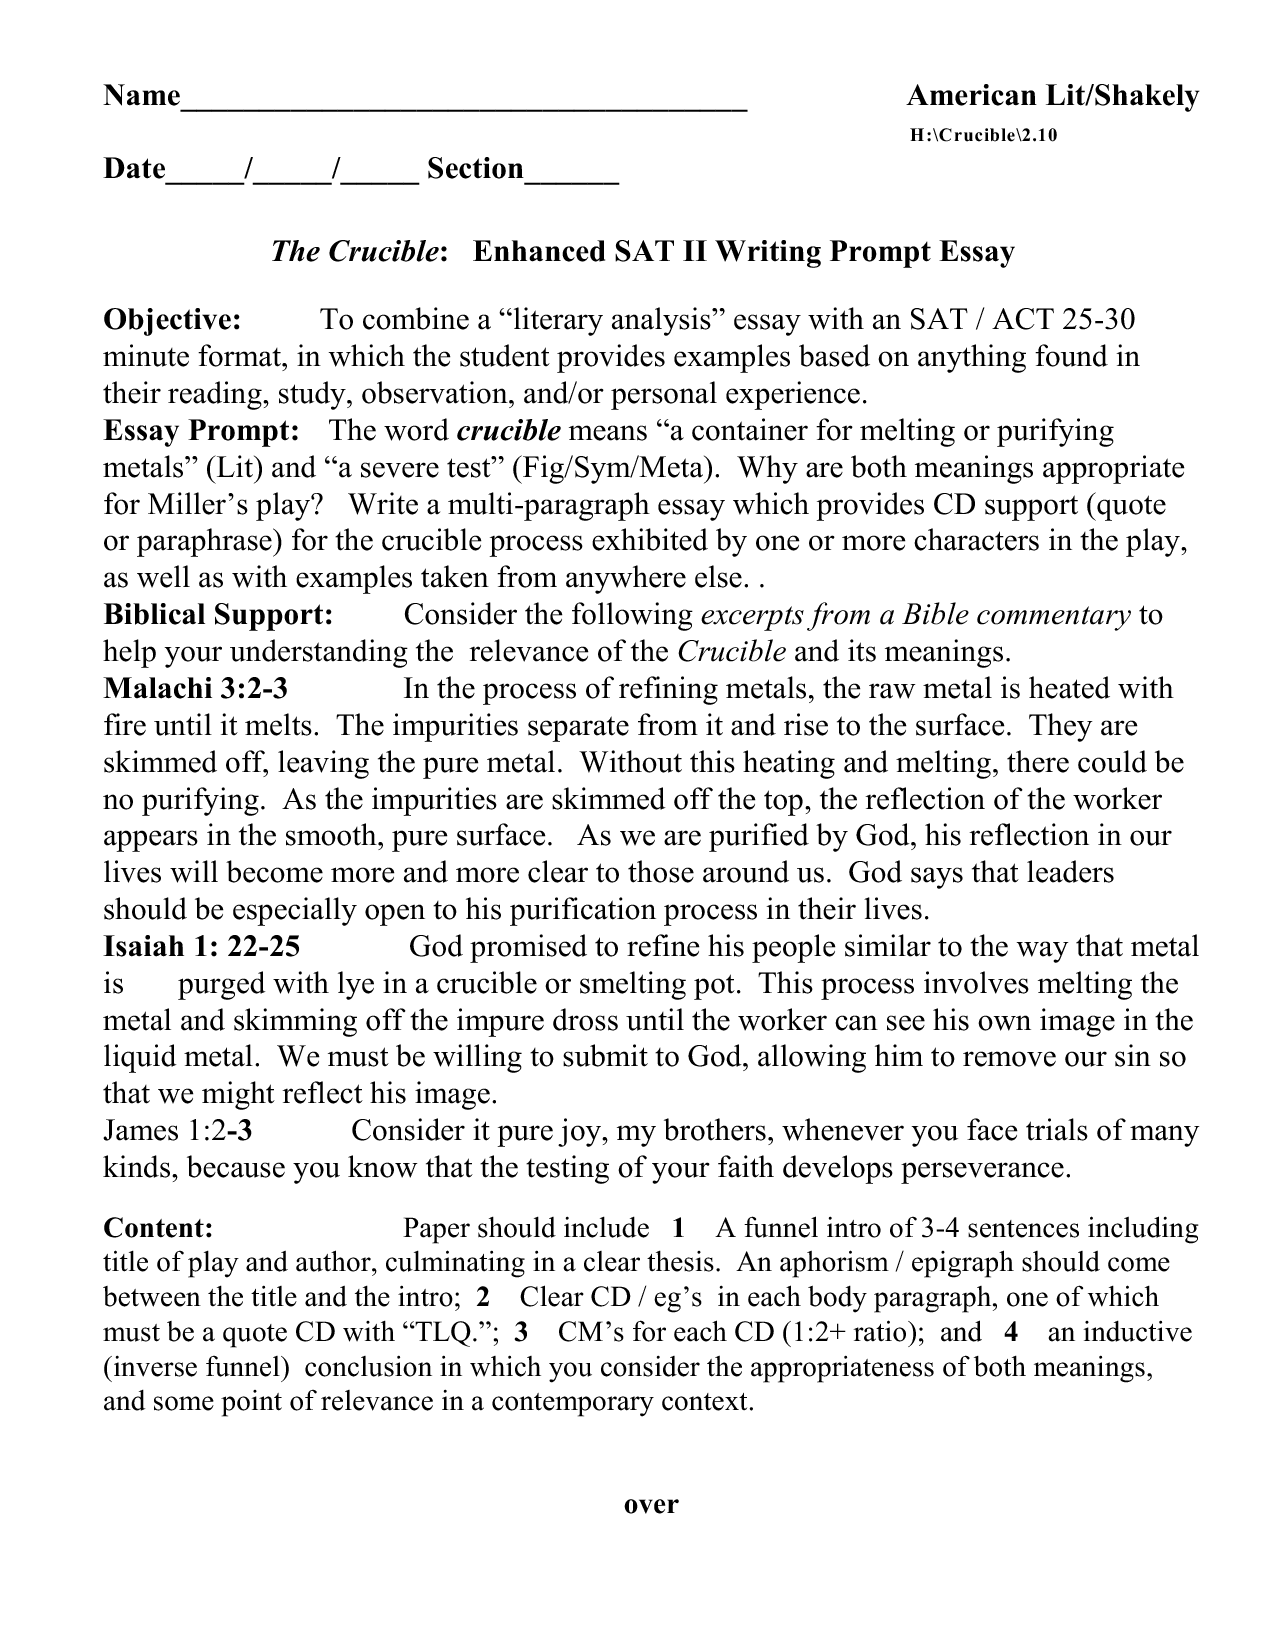 006 Sat Essay Practice Example Quotes Quotesgram Is There An On The L Exceptional Test 8 4 Full